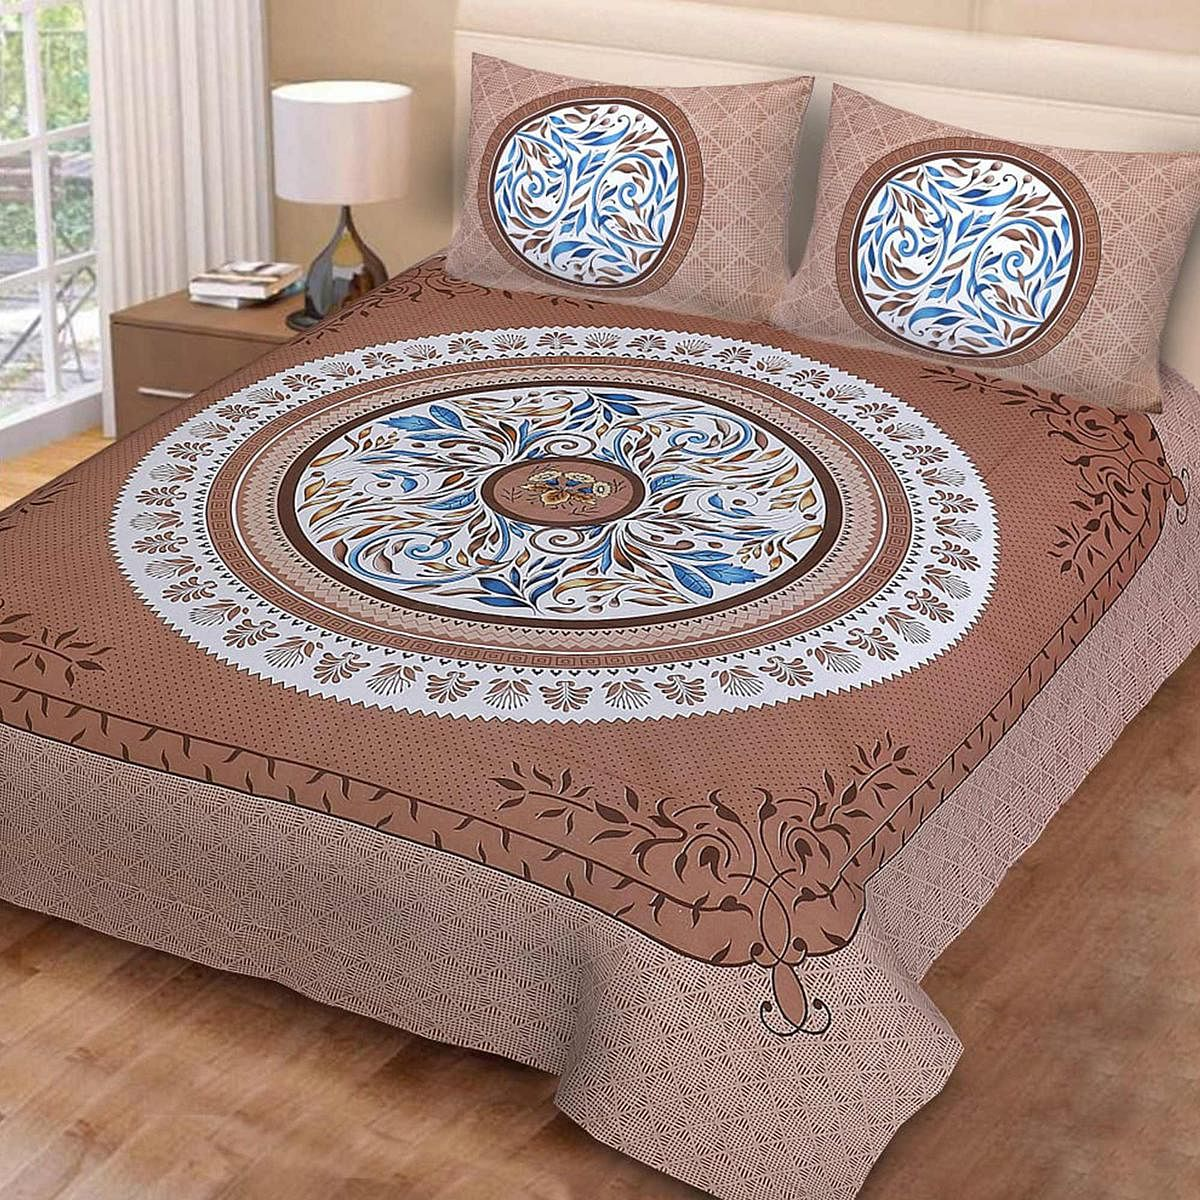 Eye-catching Brown Colored Print Cotton Double Bedsheet with 2 Pillow Cover